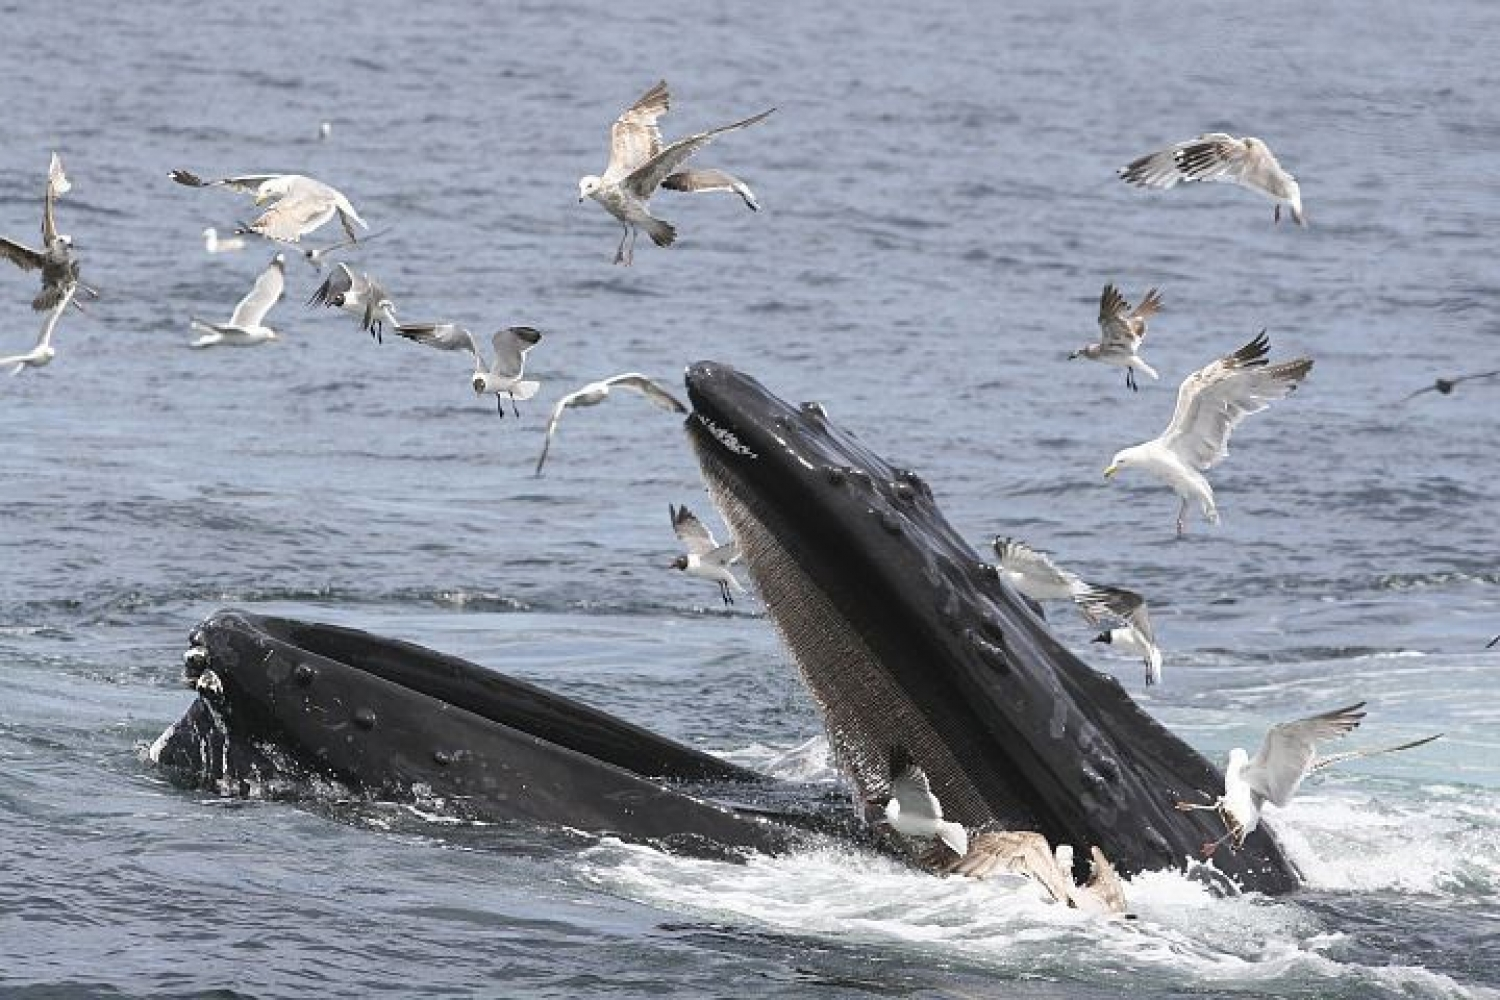 Humpback whale and seagulls